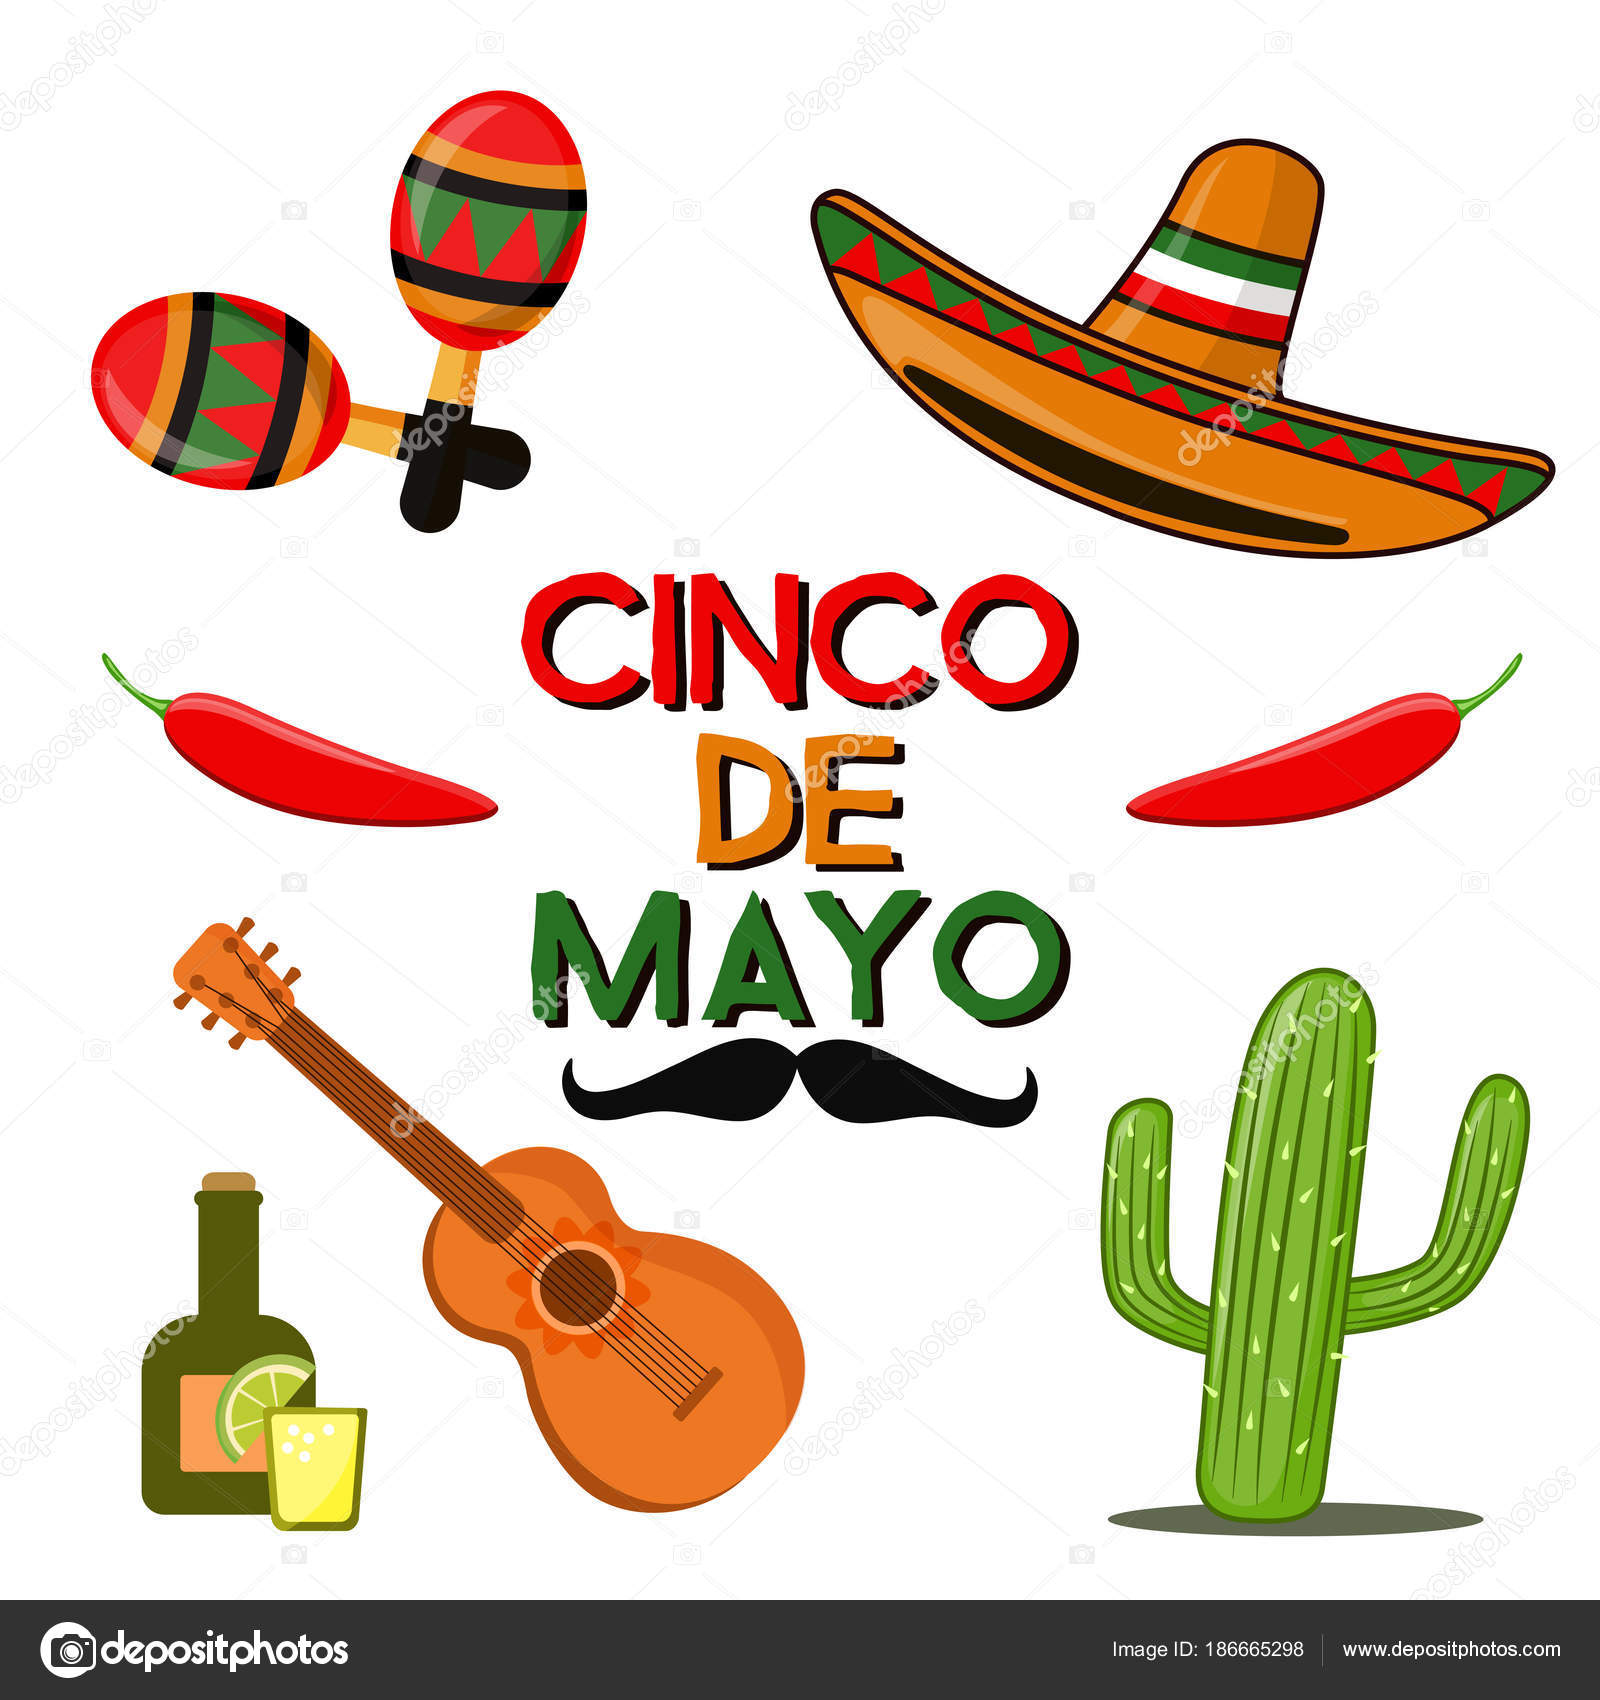 Cinco de Mayo celebration in Mexico, icons set, design element, flat.